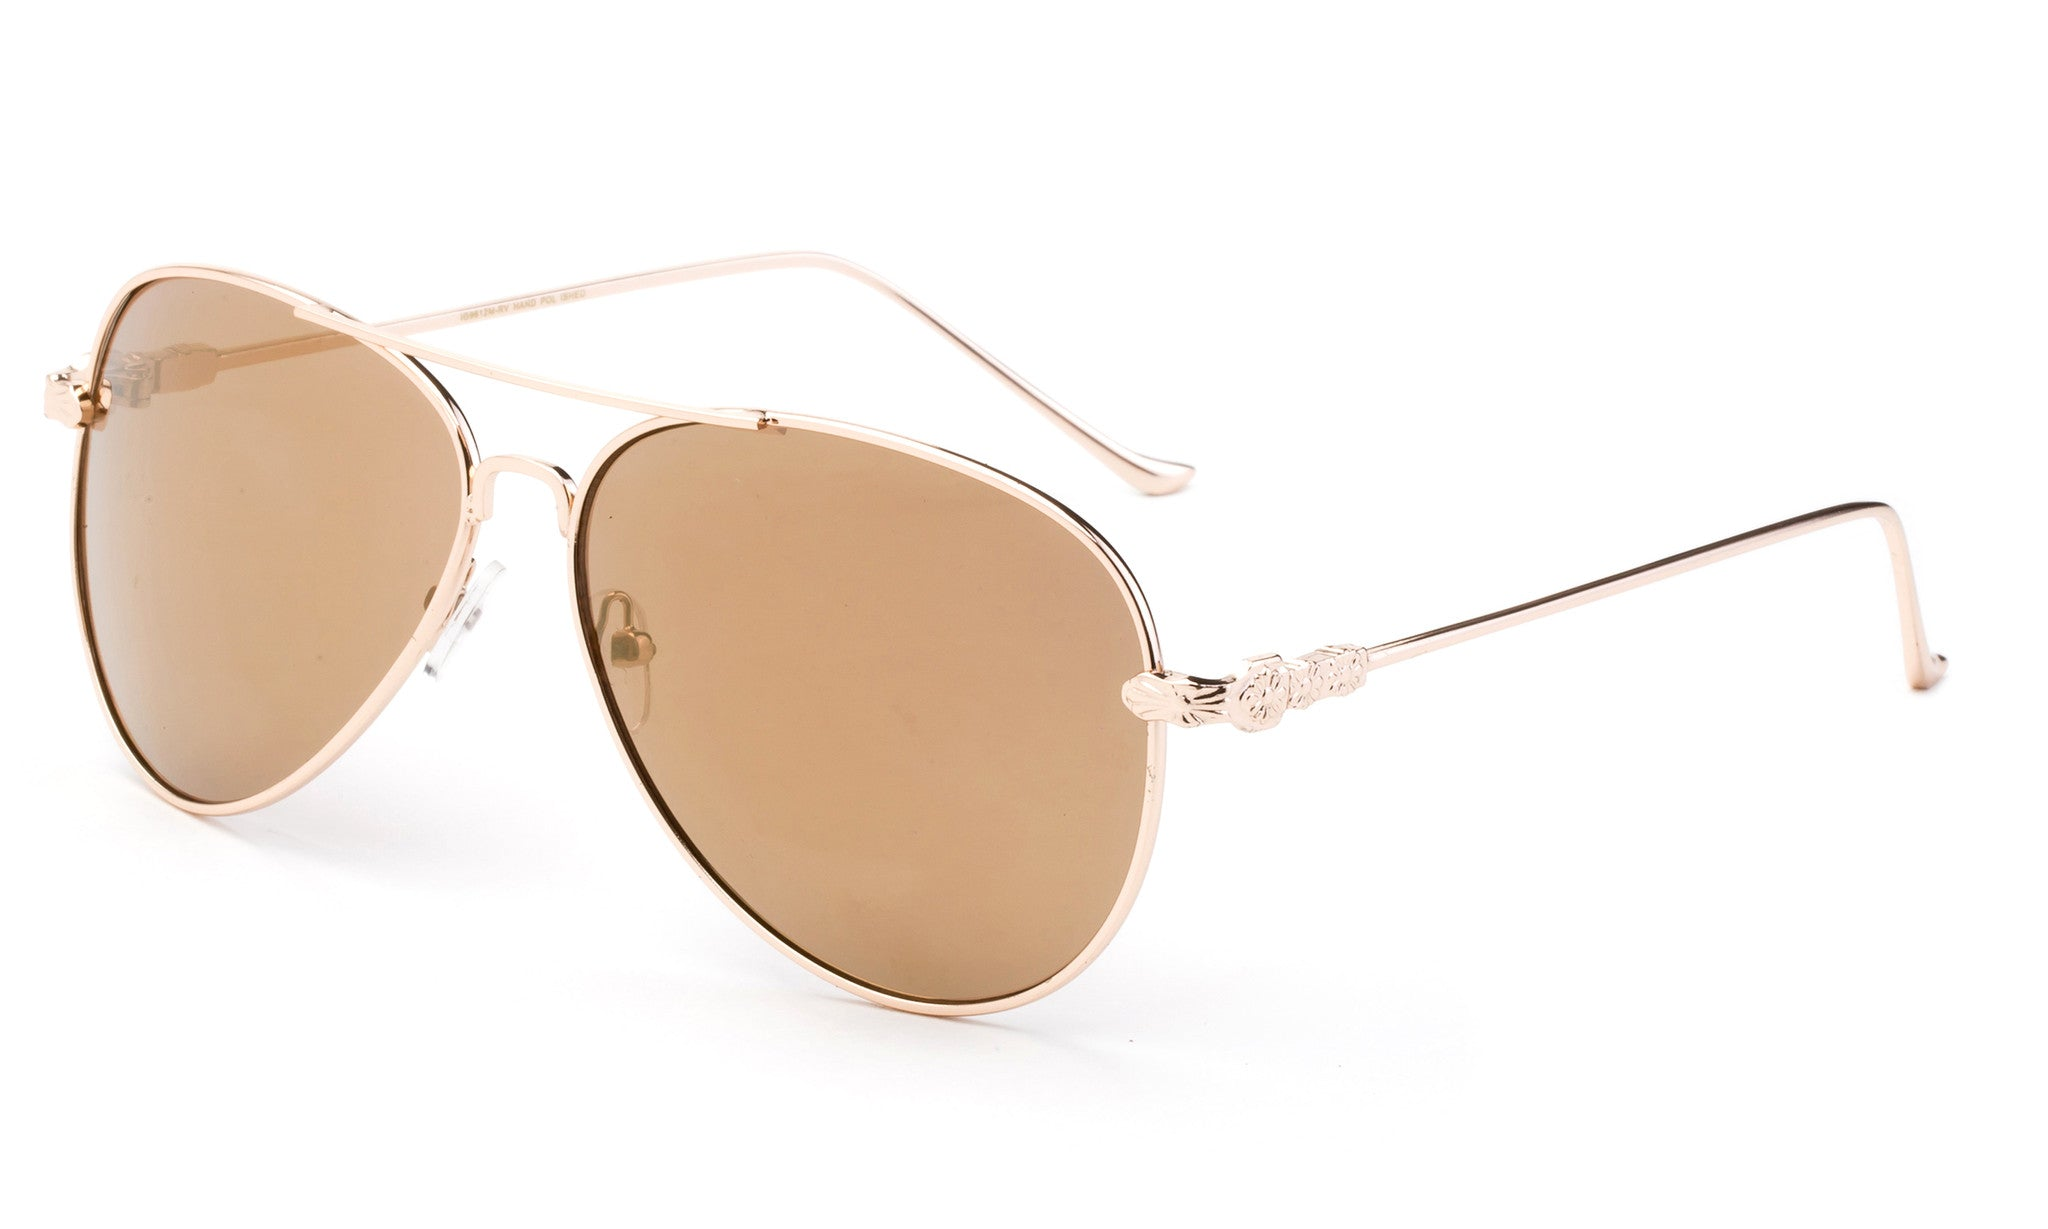 7a5cc494a0 Classic Aviator Sunglasses with Gold Metal Frame and Light Brown Flash Lens